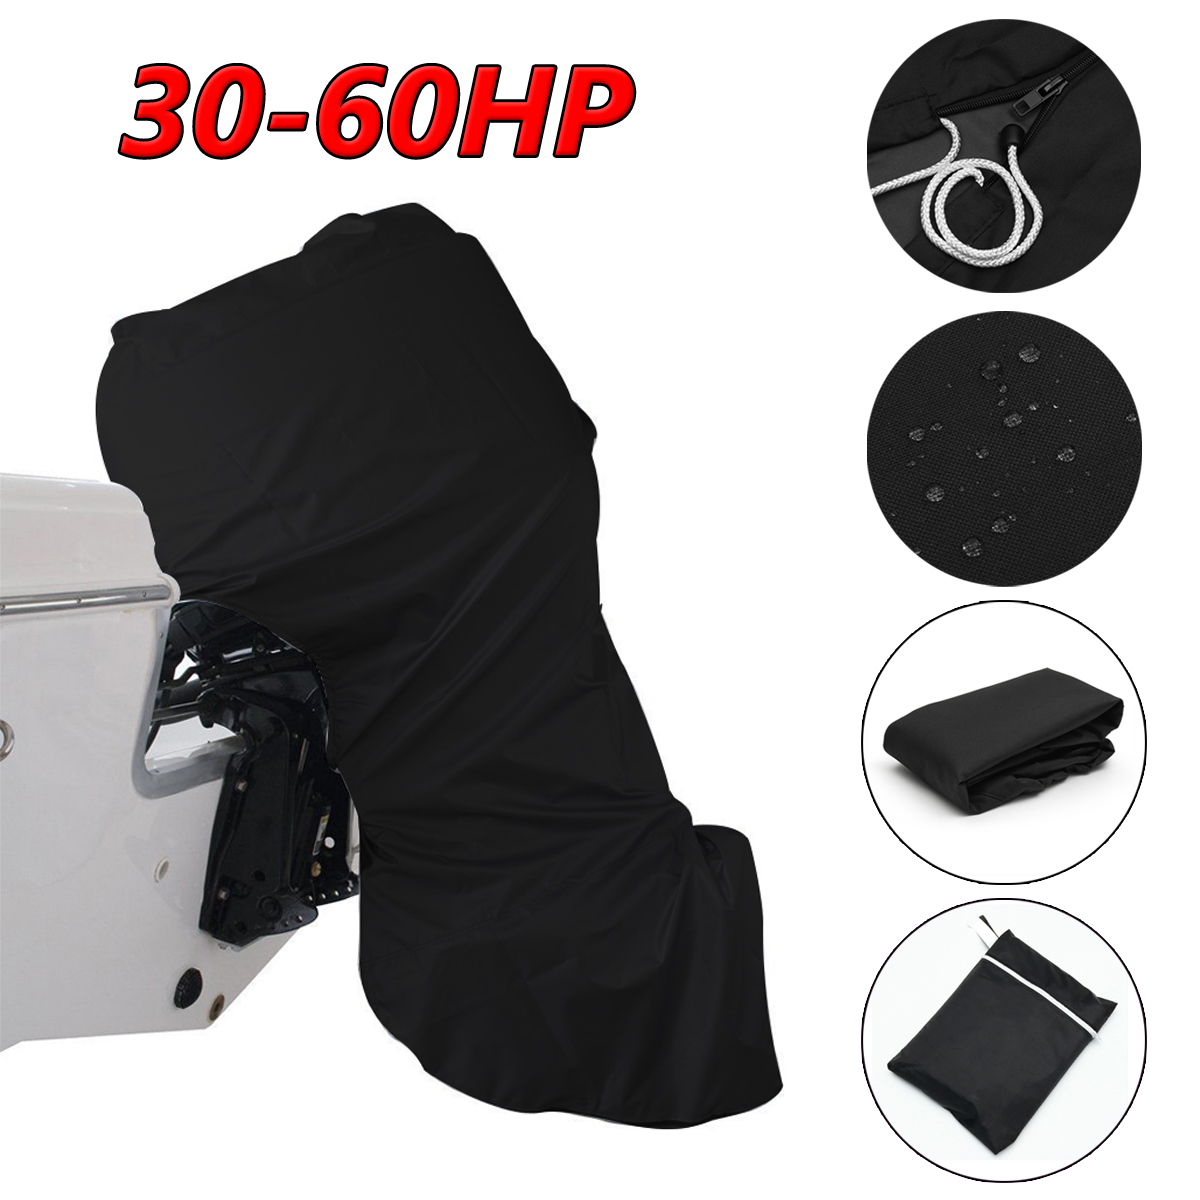 56.69inch 600D Black Boat Full Outboard Engine Cover For 30-60 Hose Power Motor Waterproof